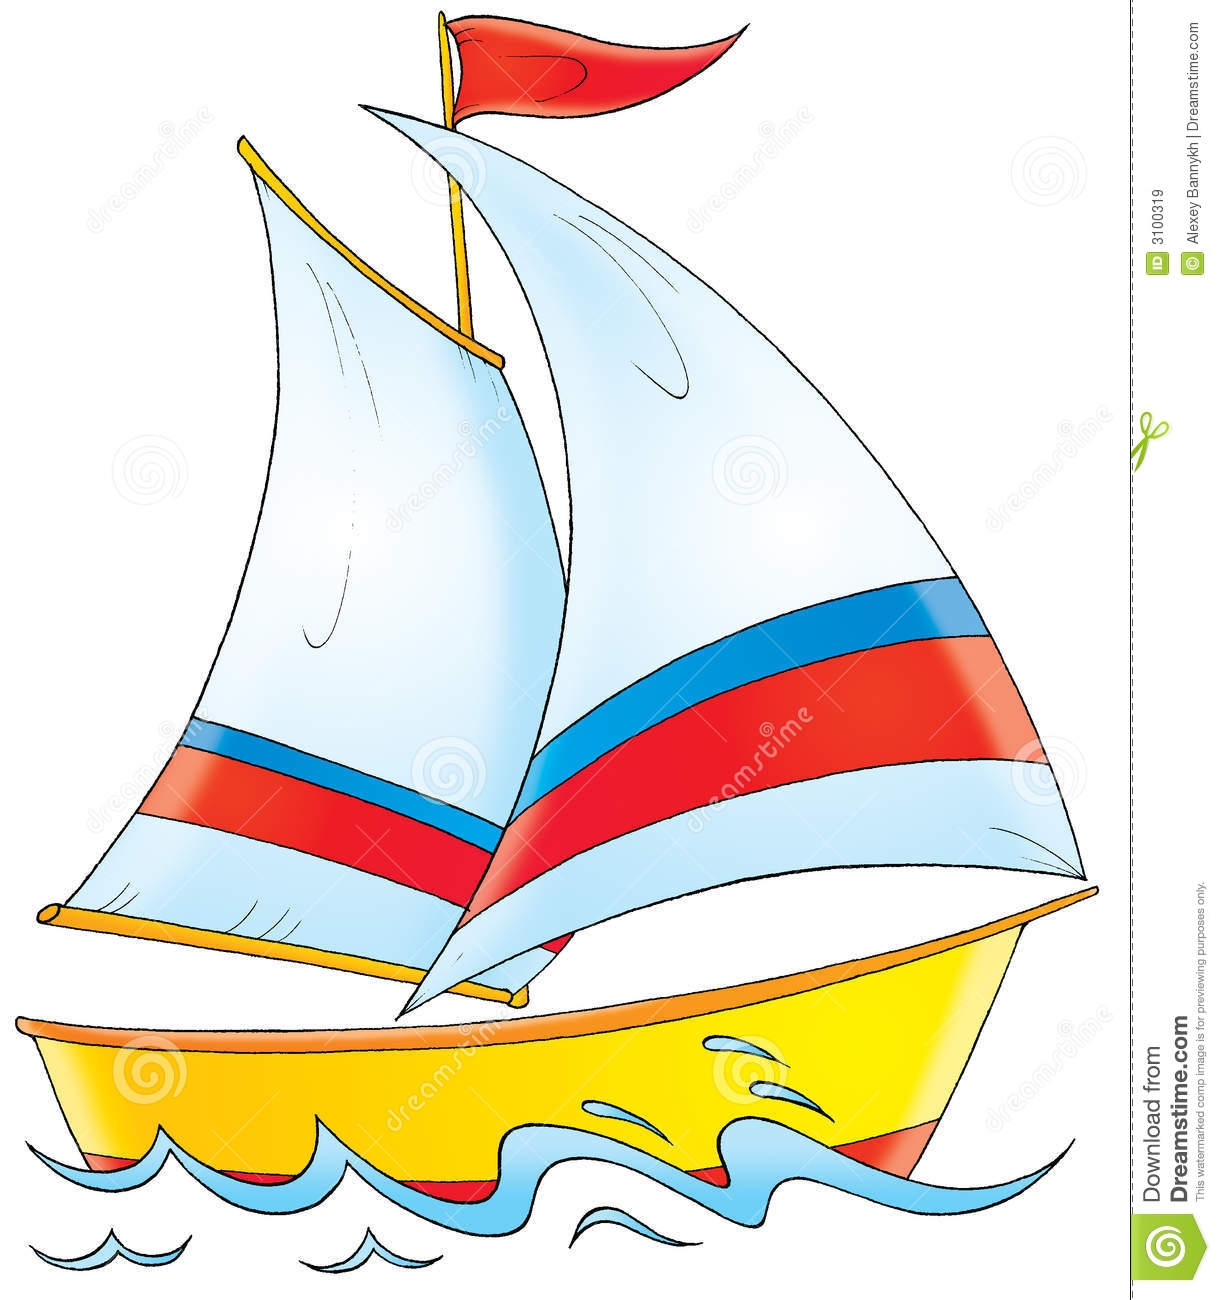 Awesome gallery digital collection. Boats clipart yacht